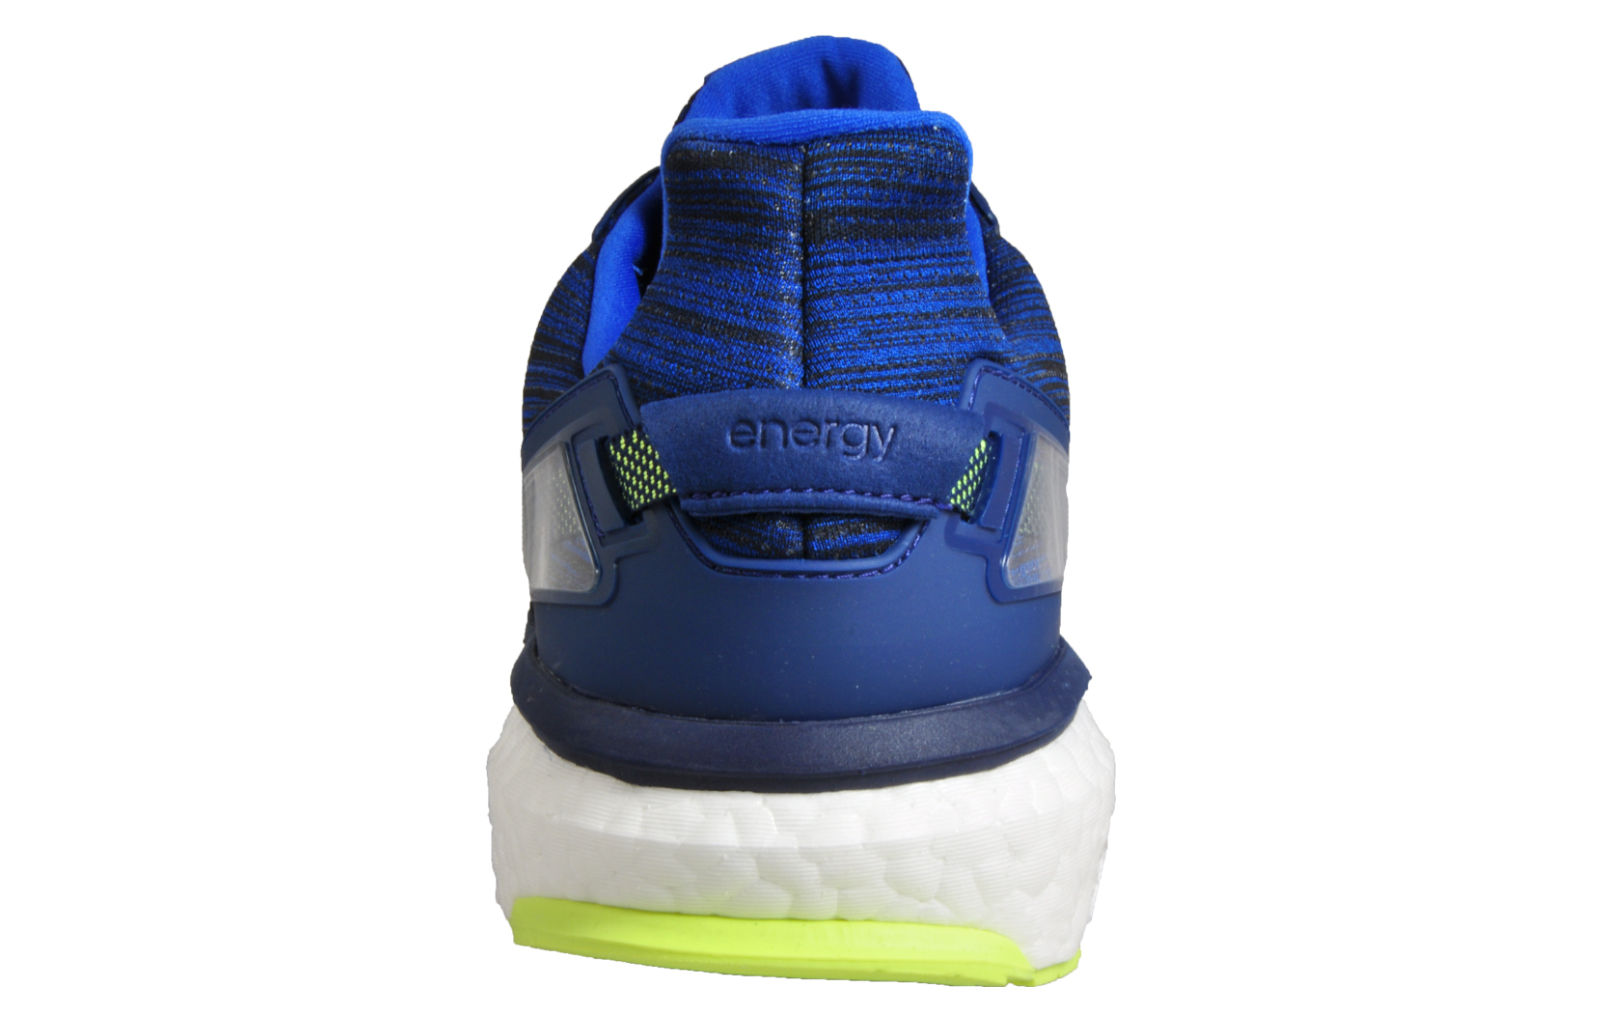 super popular 664c9 6594b Adidas Energy Boost 3 Mens Superior 5 Star Running Shoes Gym Trainers Blue